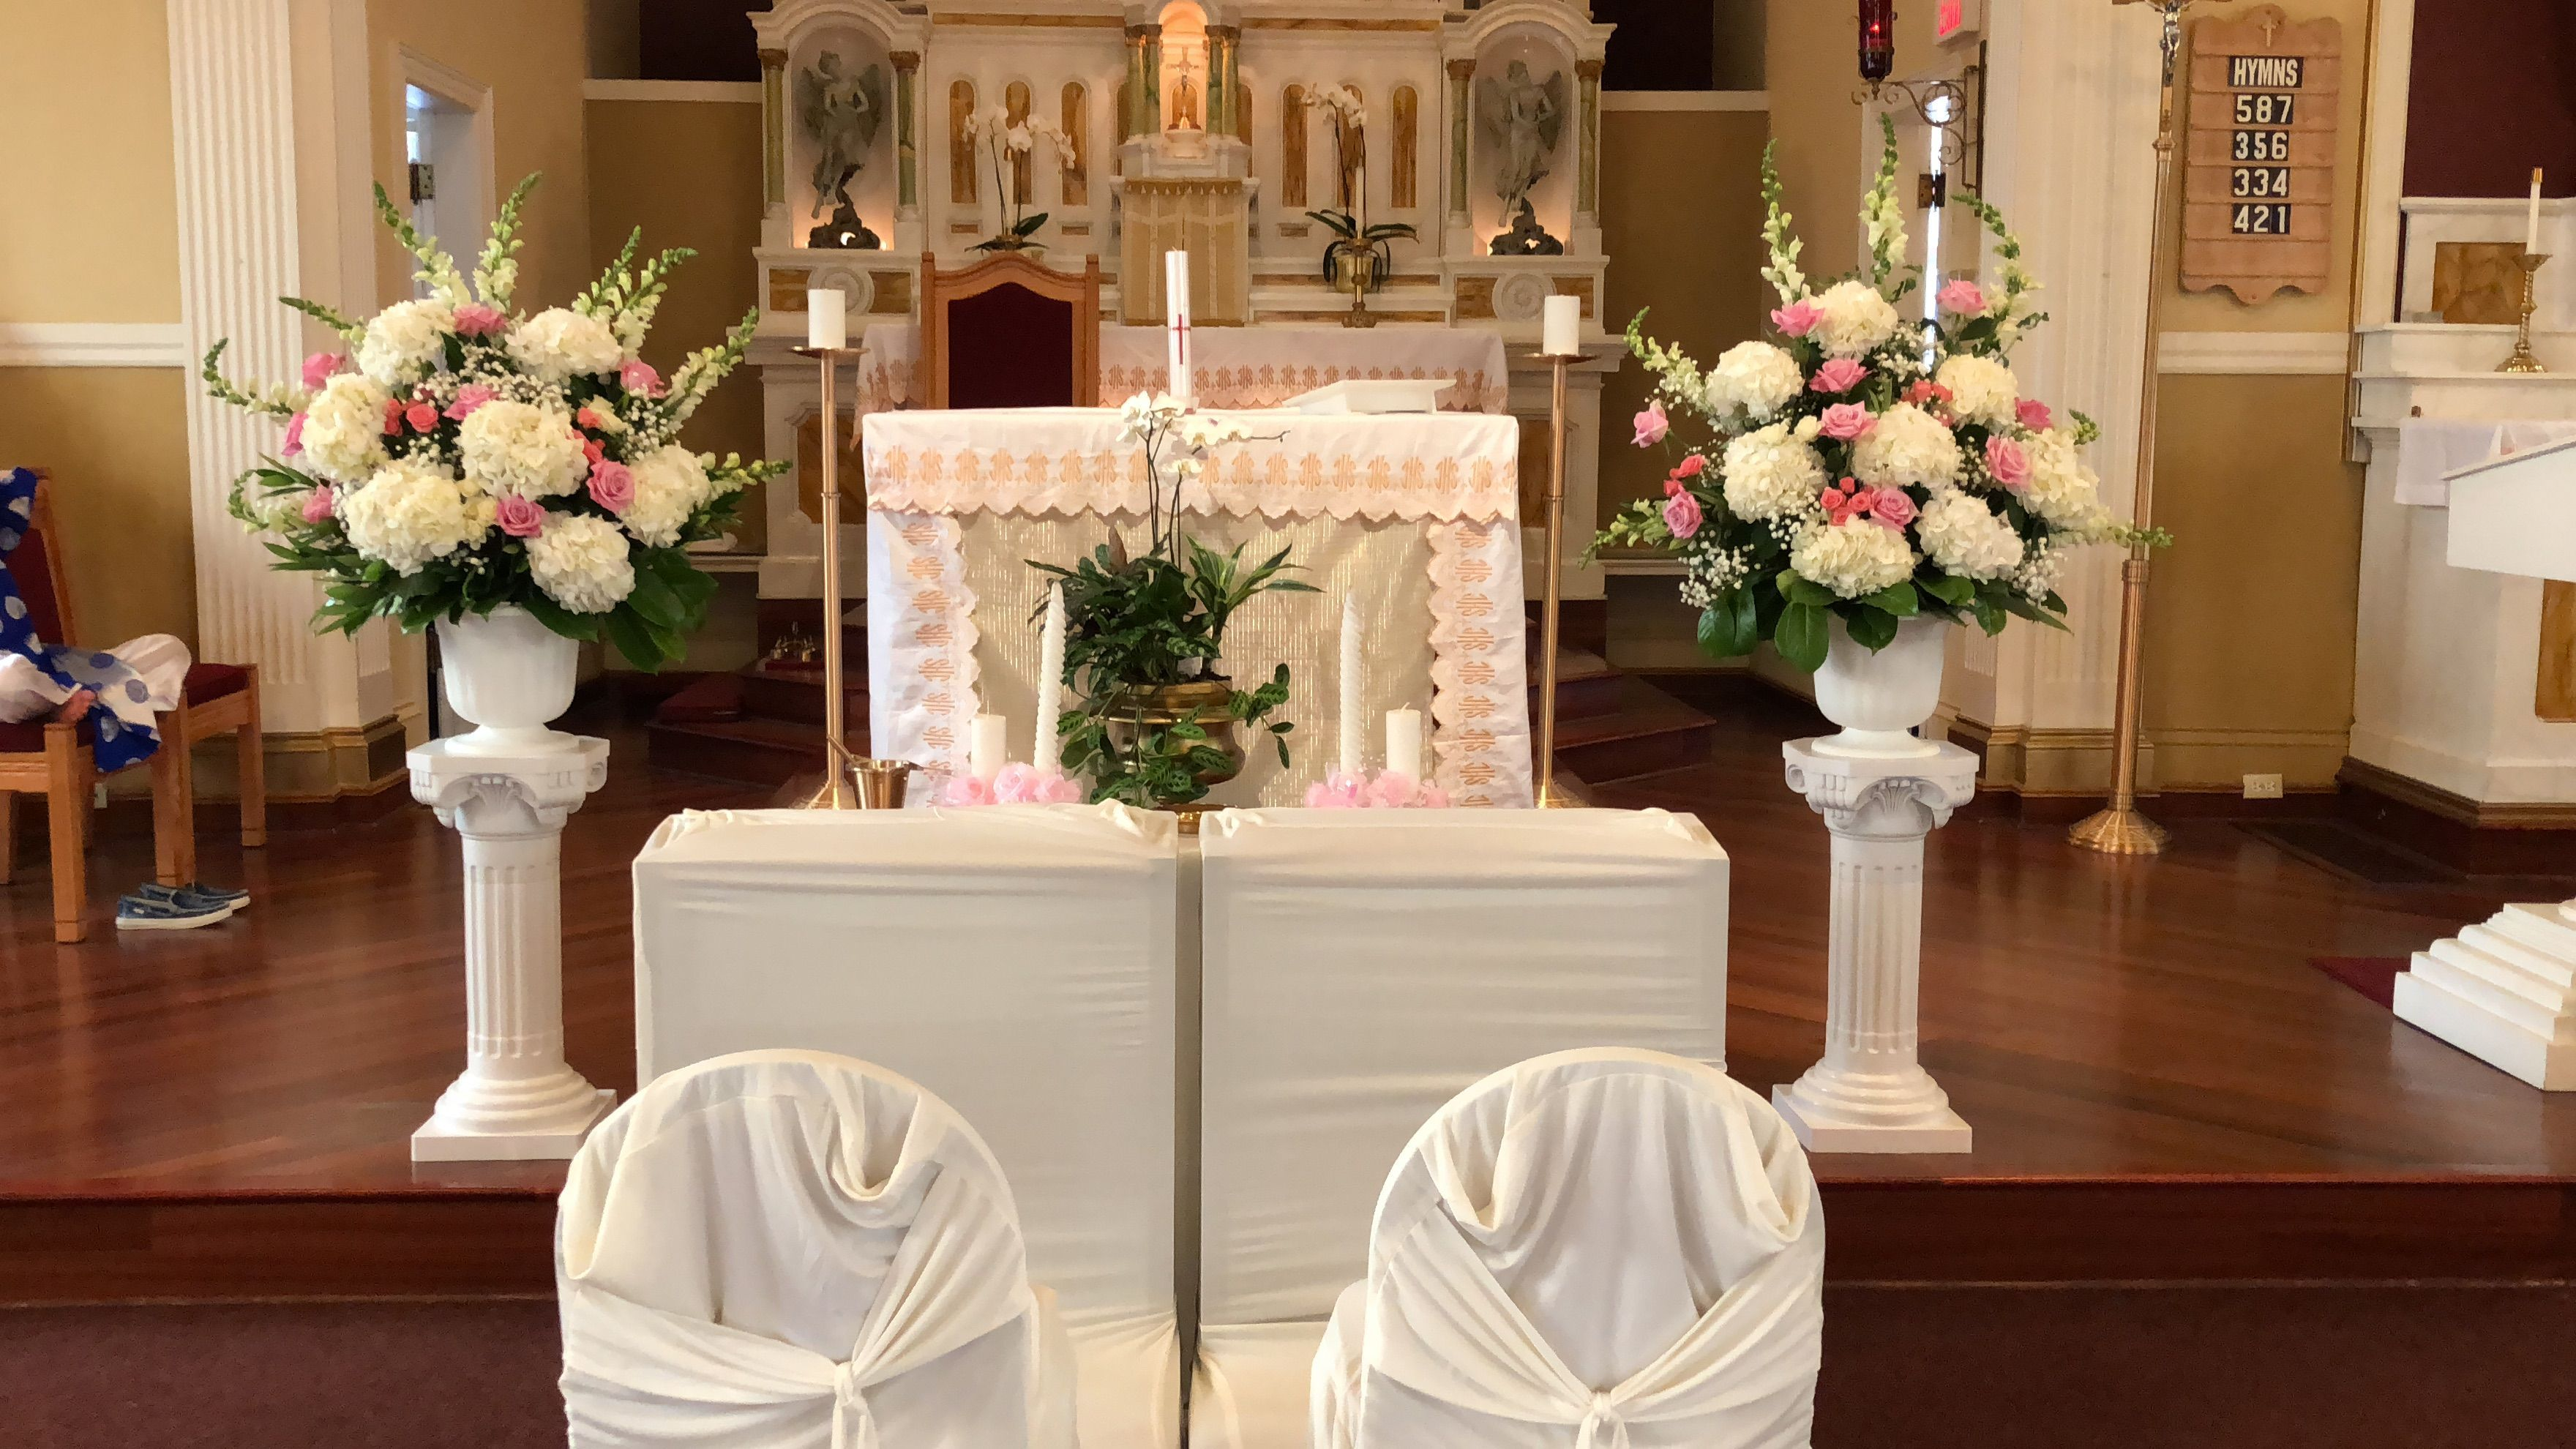 Christian wedding decoration designs  Wedding church decoration weddingdecoration  Wedding Decoration